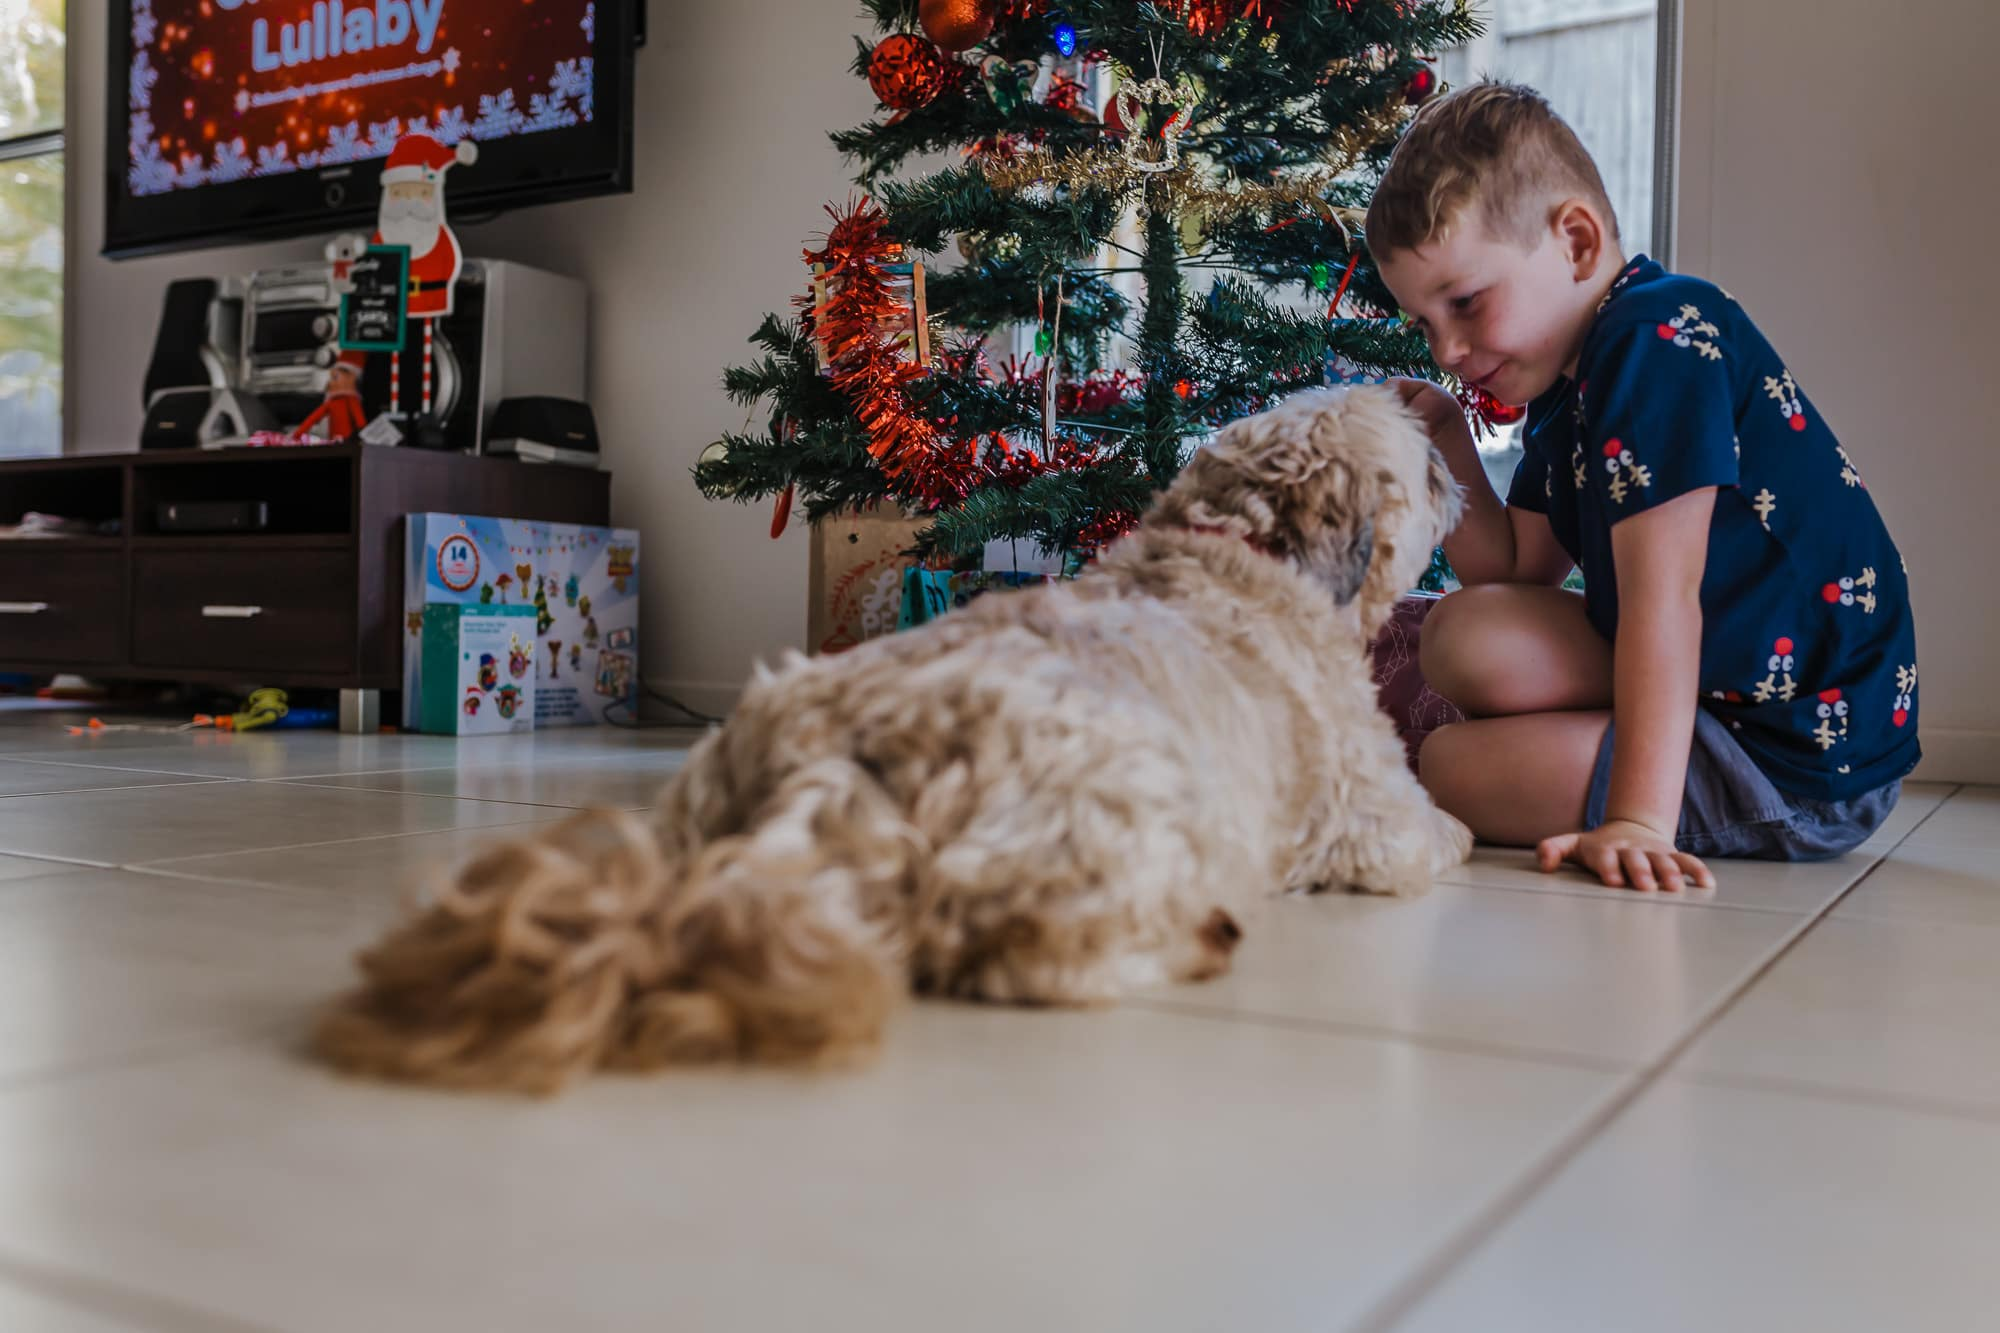 a boy and his dog excited sitting in front of the Christmas tree with all the present underneath